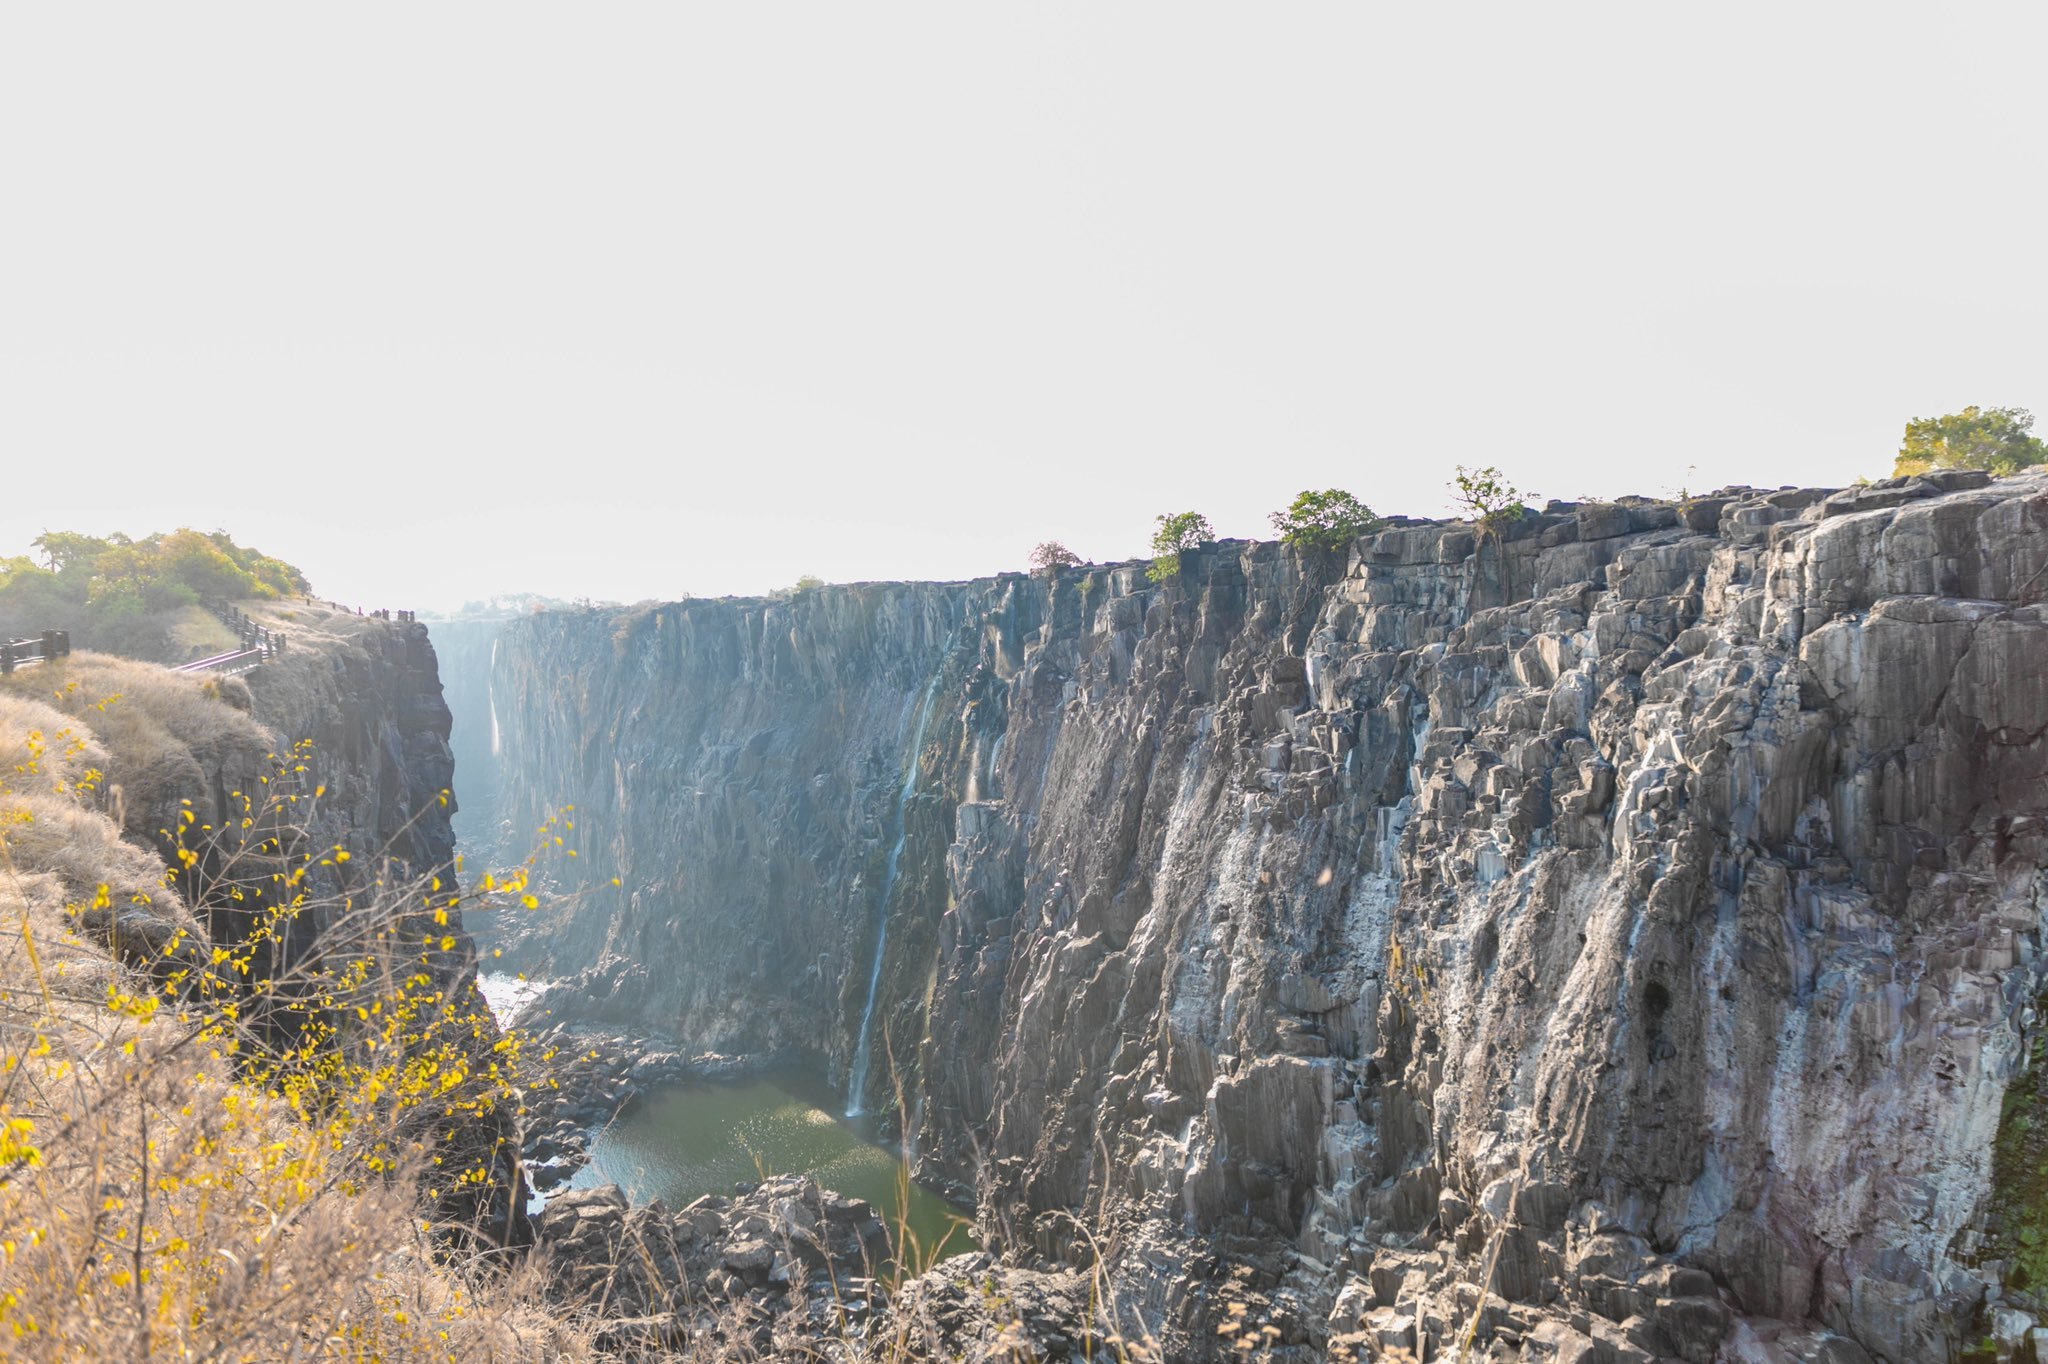 Victoria Falls Dries Drastically After Worst Drought In A